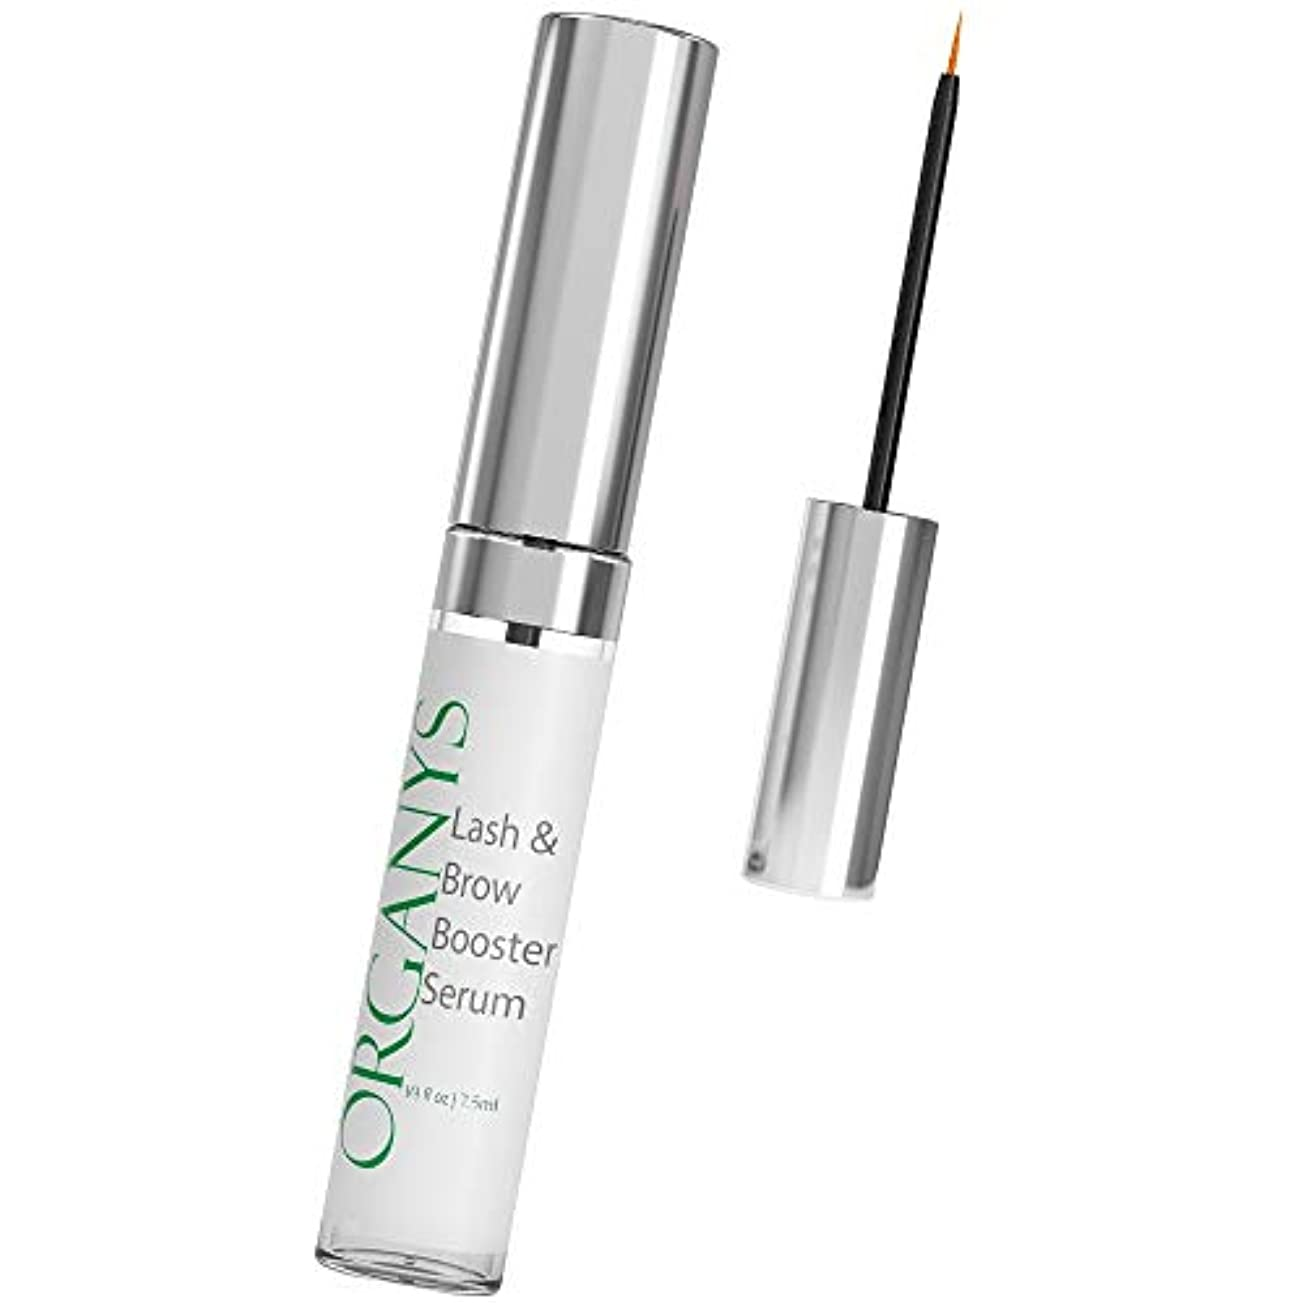 名詞スーパーマーケットハーネスOrganyc Eyelash & Eyebrow Growth Serum (High Potency) Grows Longer, Fuller, Thicker Lashes & Brows in 60 days!...